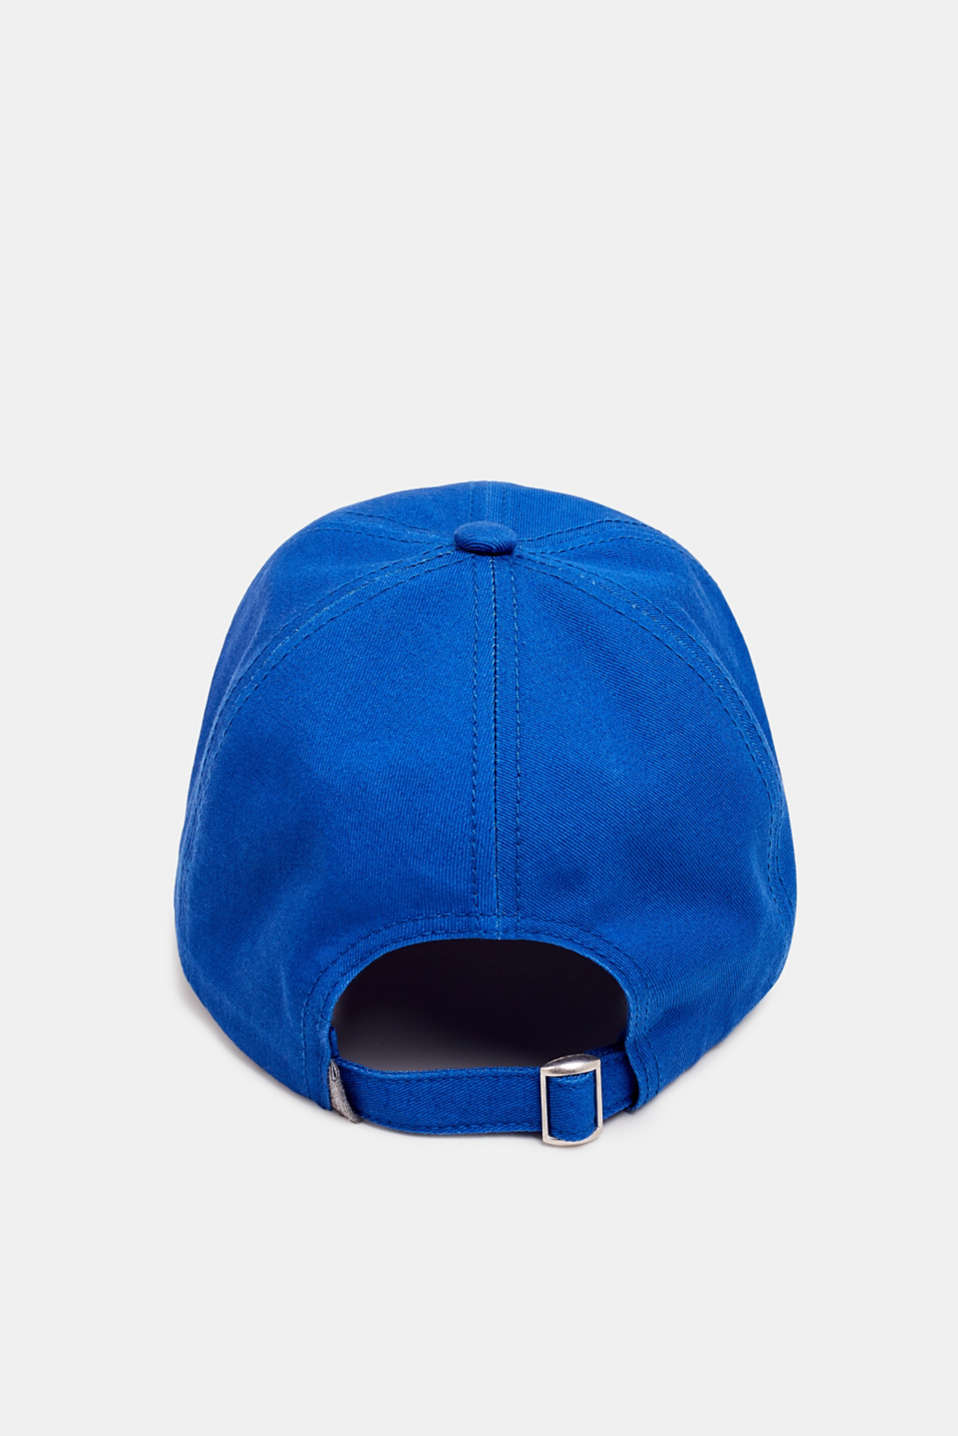 CRAIG & KARL: 100% cotton baseball cap, BRIGHT BLUE, detail image number 3